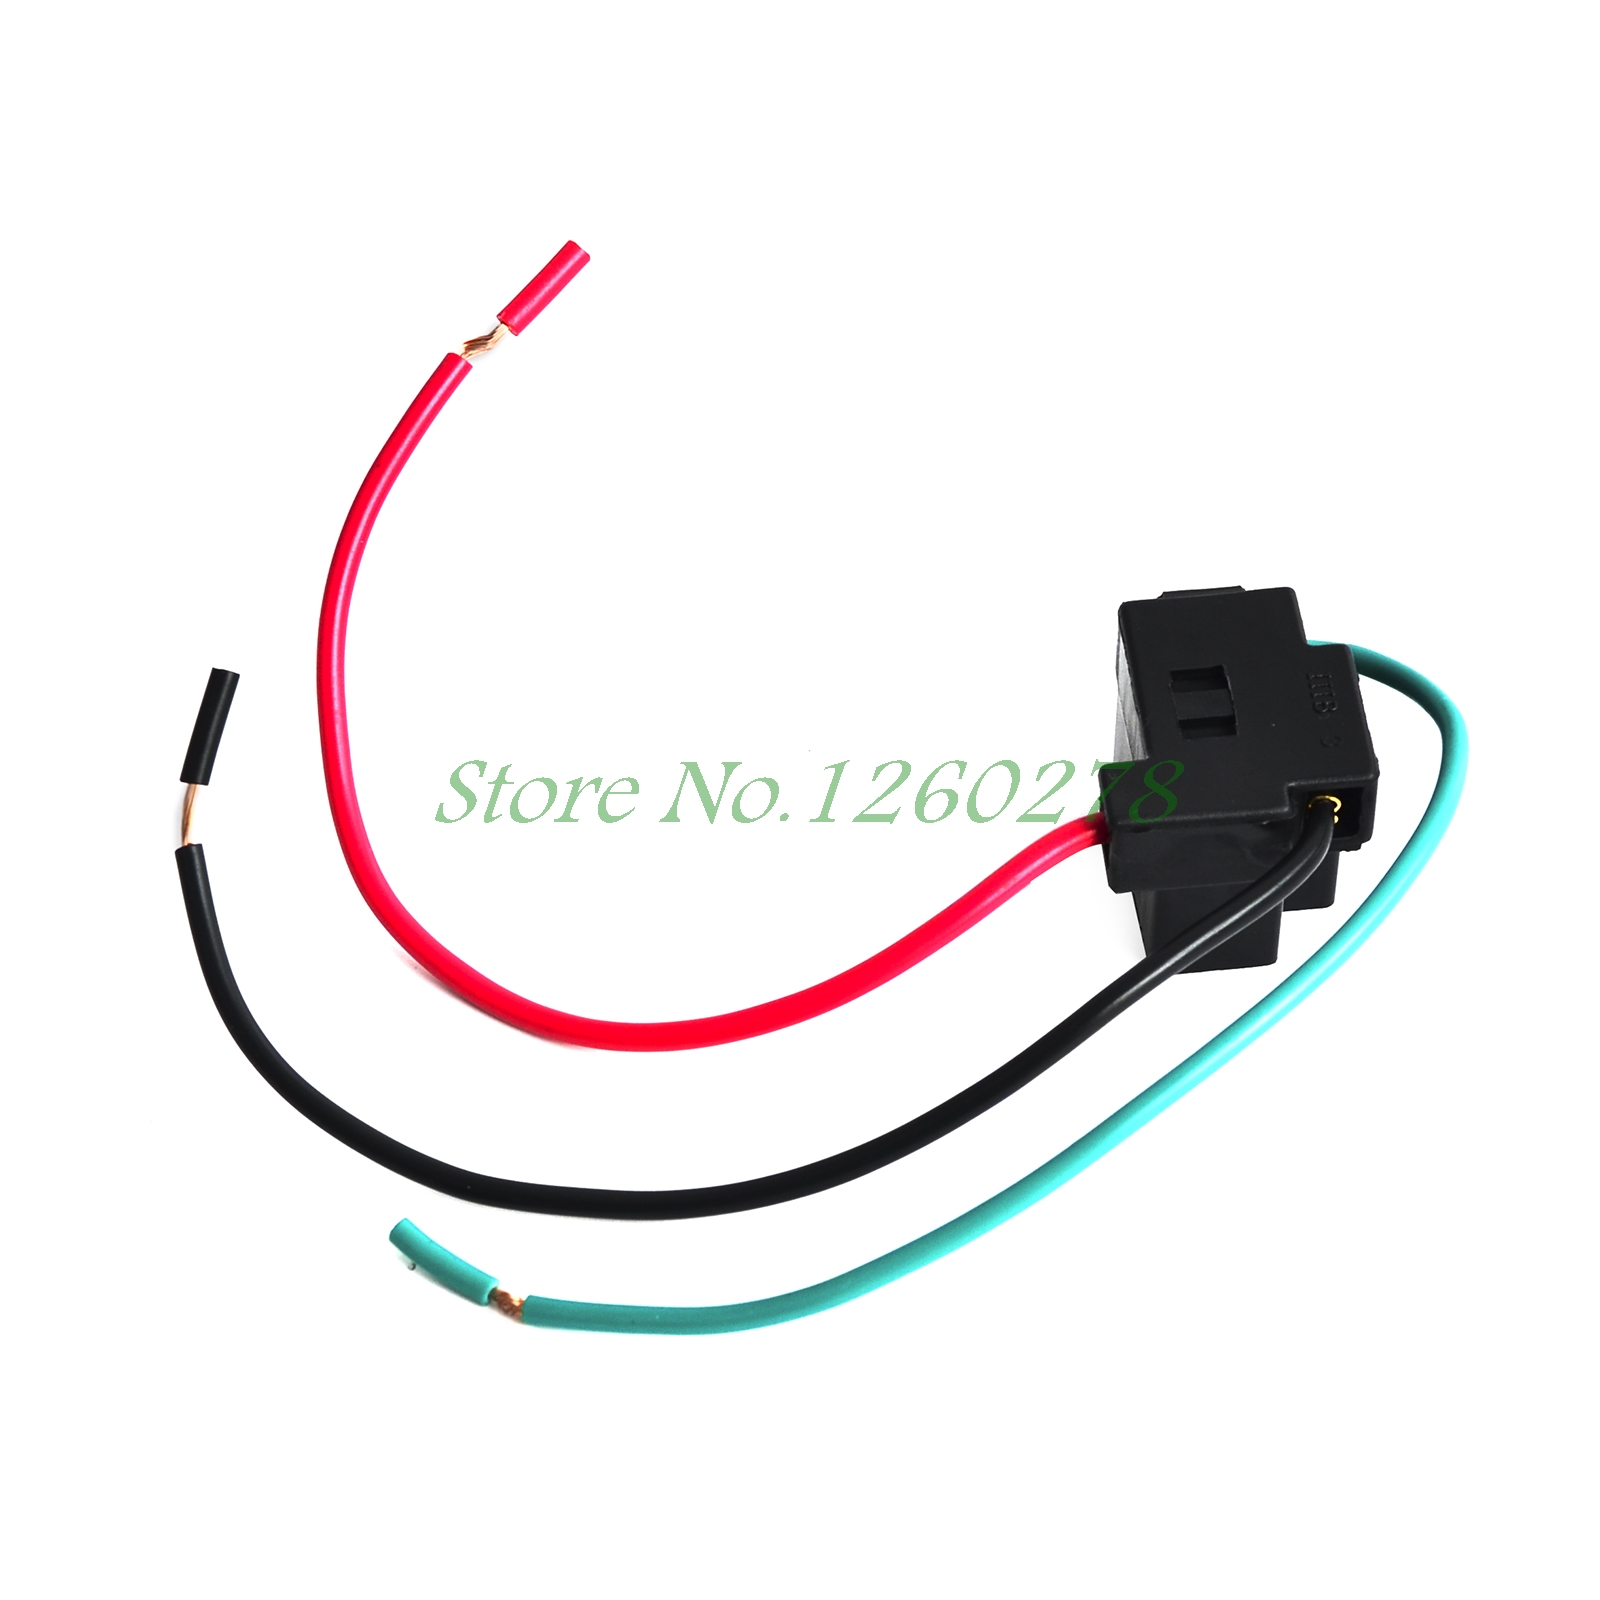 medium resolution of 2pcs h4 female adapter wiring harness sockets wire harness connector for headlights in car headlight bulbs led from automobiles motorcycles on